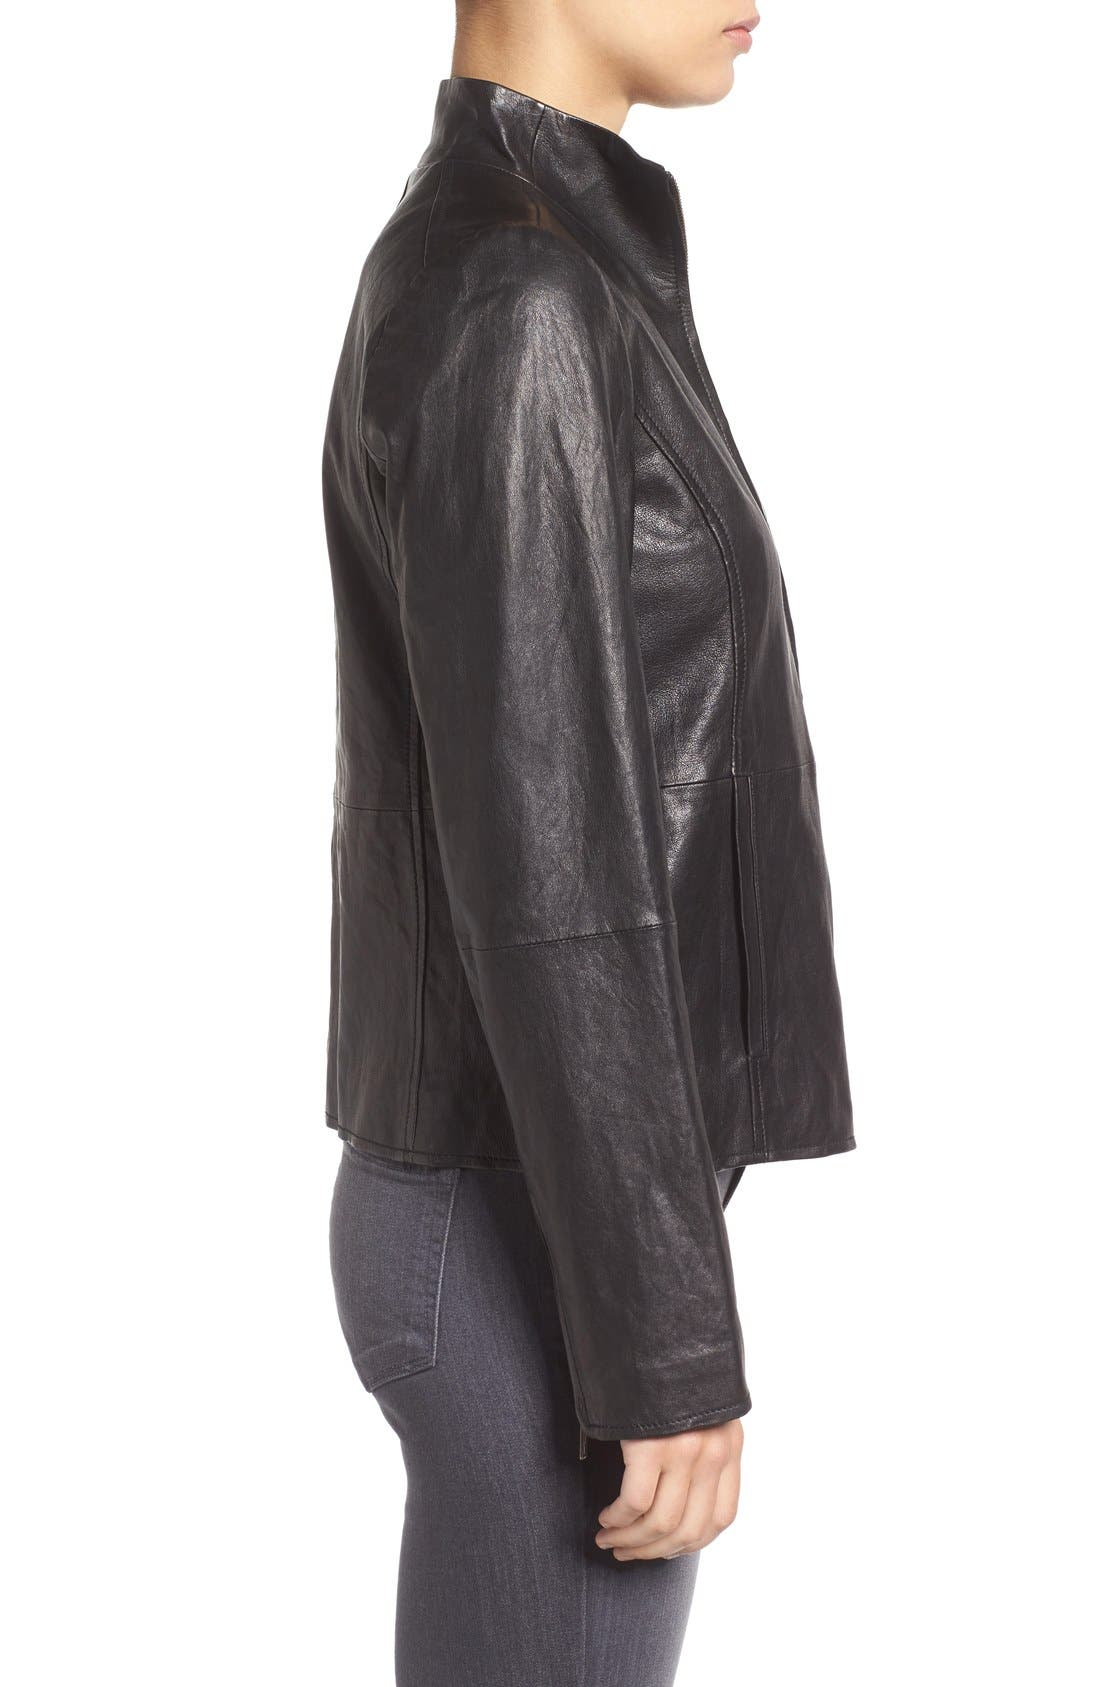 Rumpled Luxe Leather Stand Collar Jacket,                             Alternate thumbnail 3, color,                             001